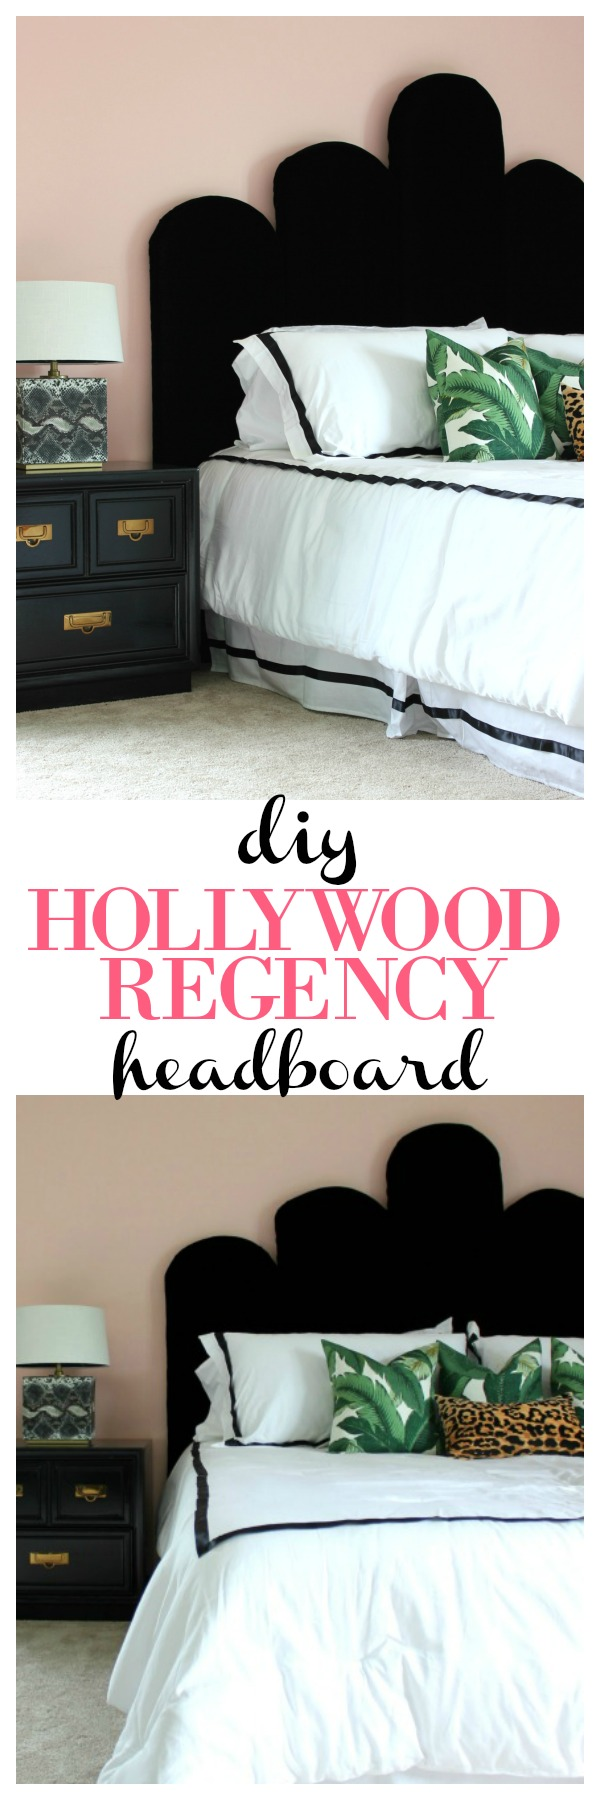 DIY Upholstered Headboard | DIY Headboard Ideas | Headboard DIY | Easy DIY Headboard | Hollywood Regency Headboard | DIY Velvet Headboard